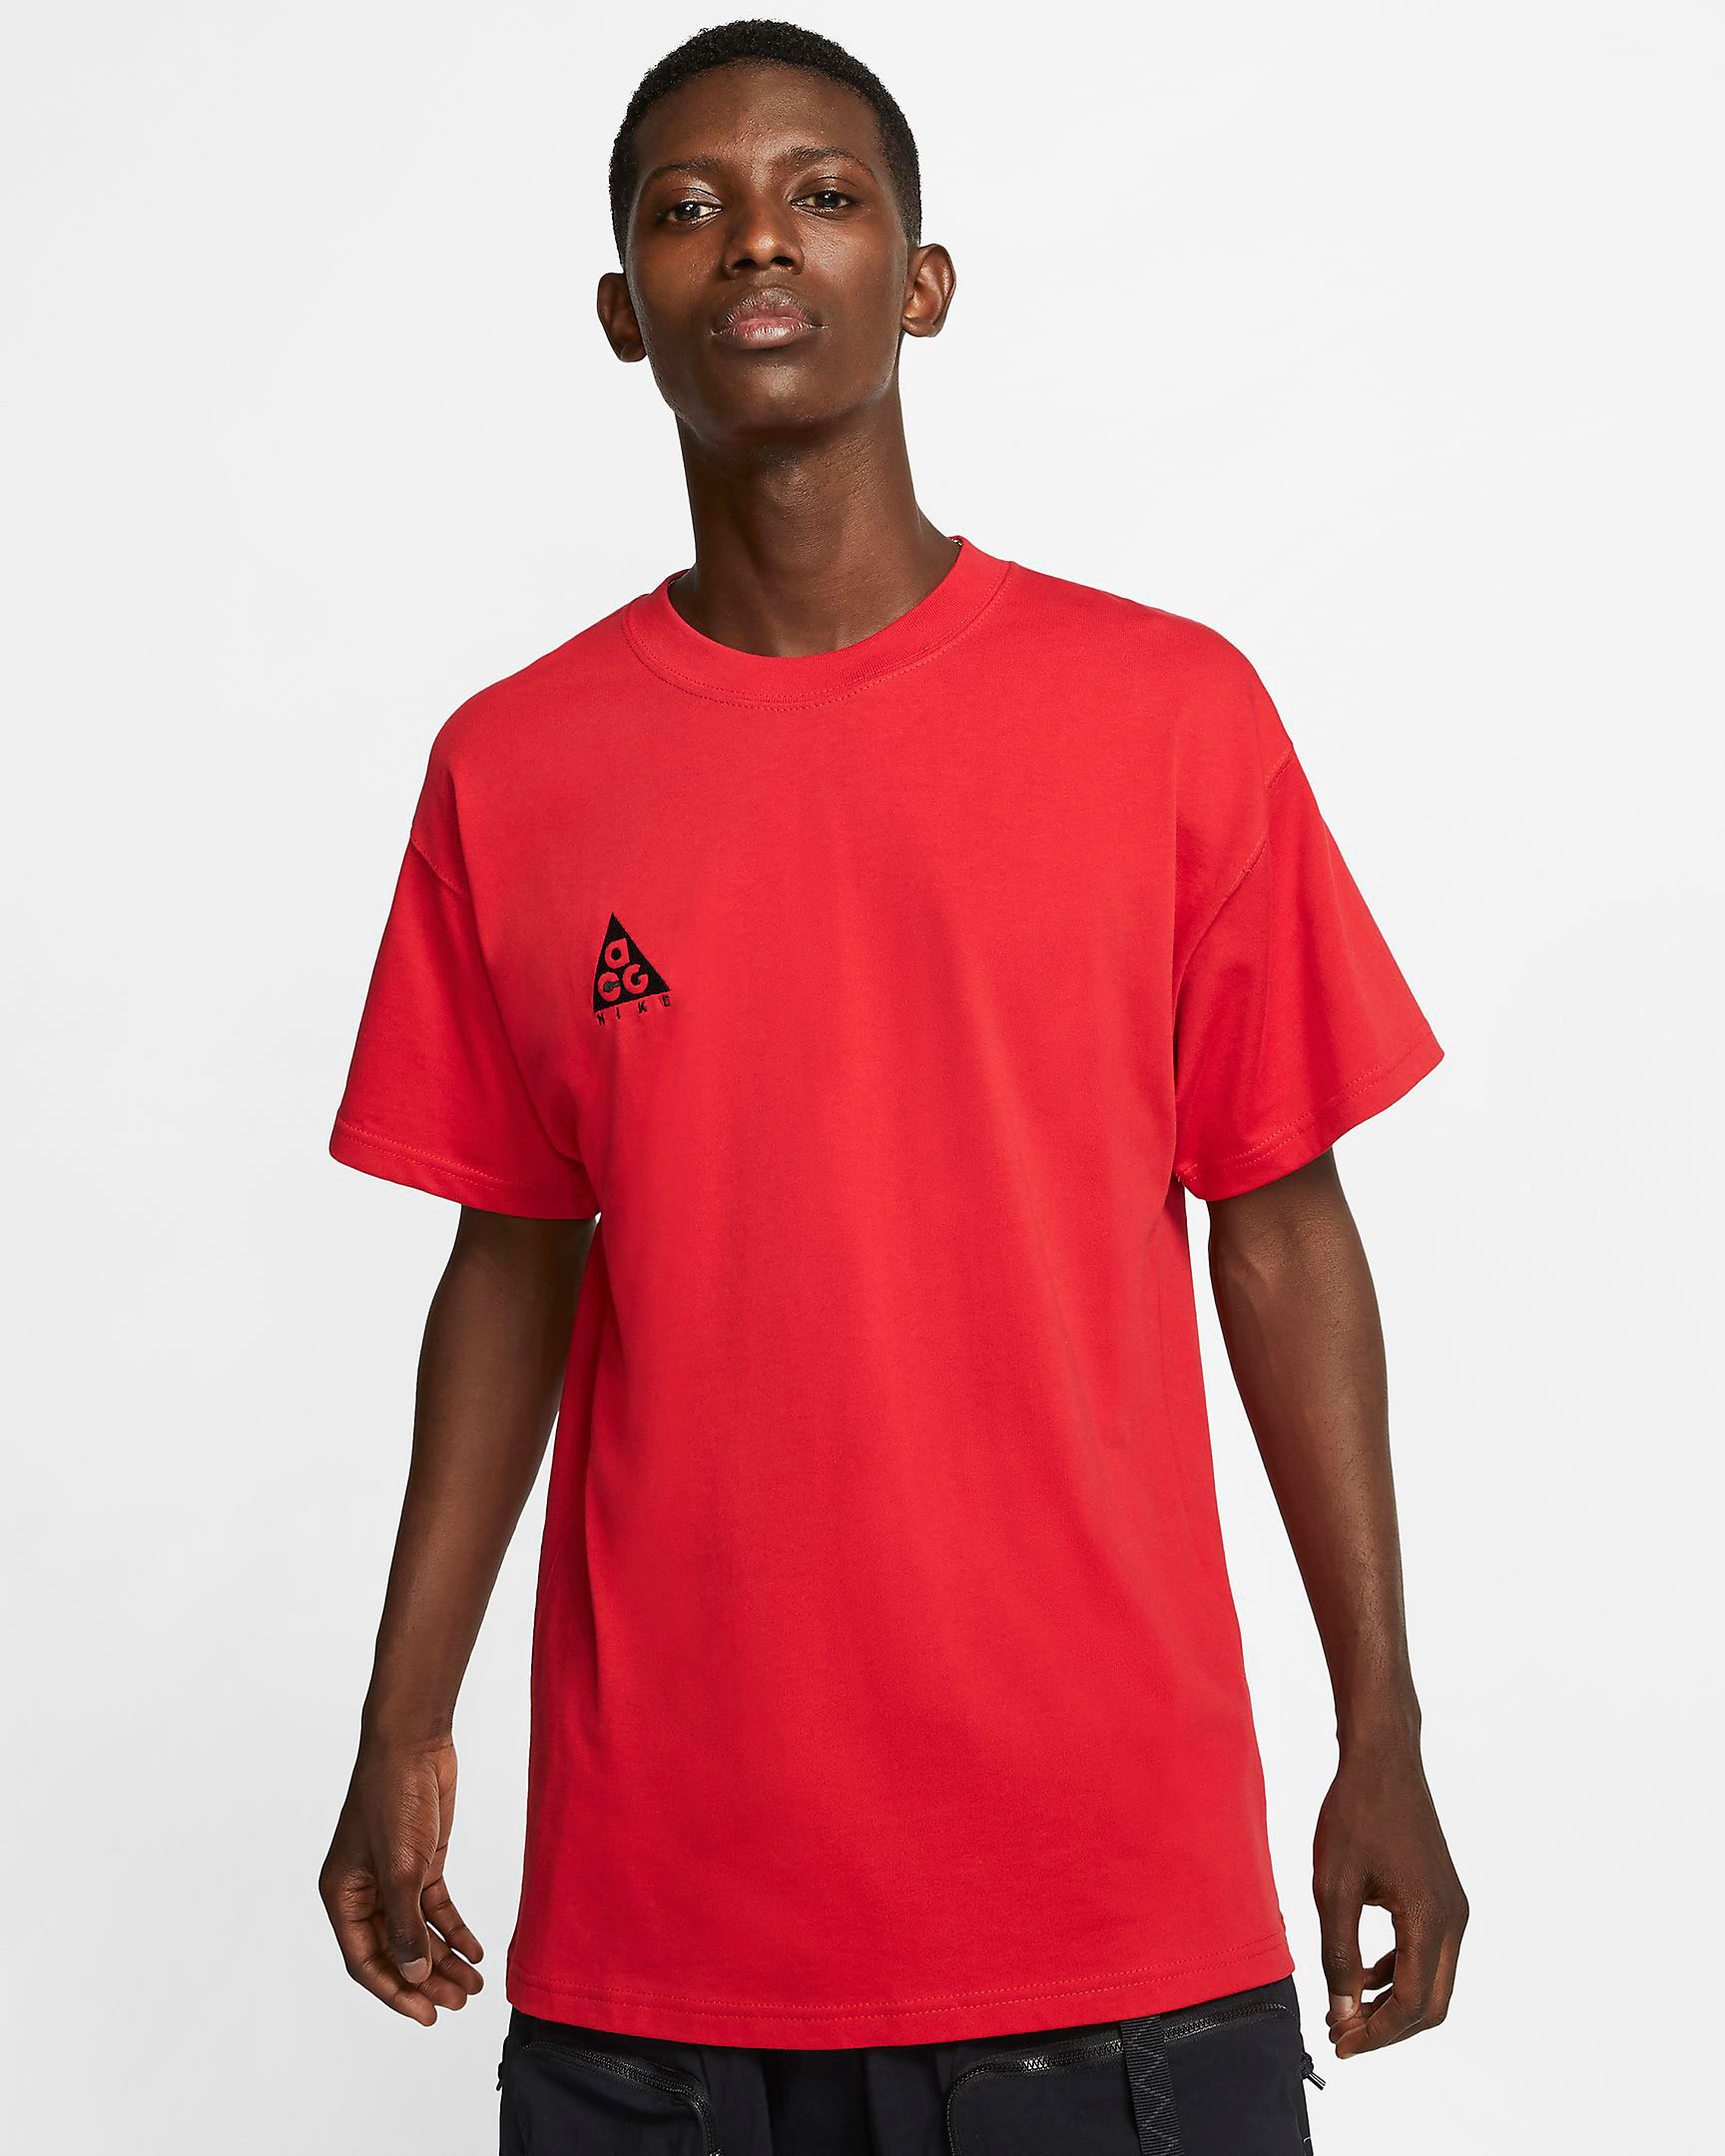 nike-acg-shirt-red